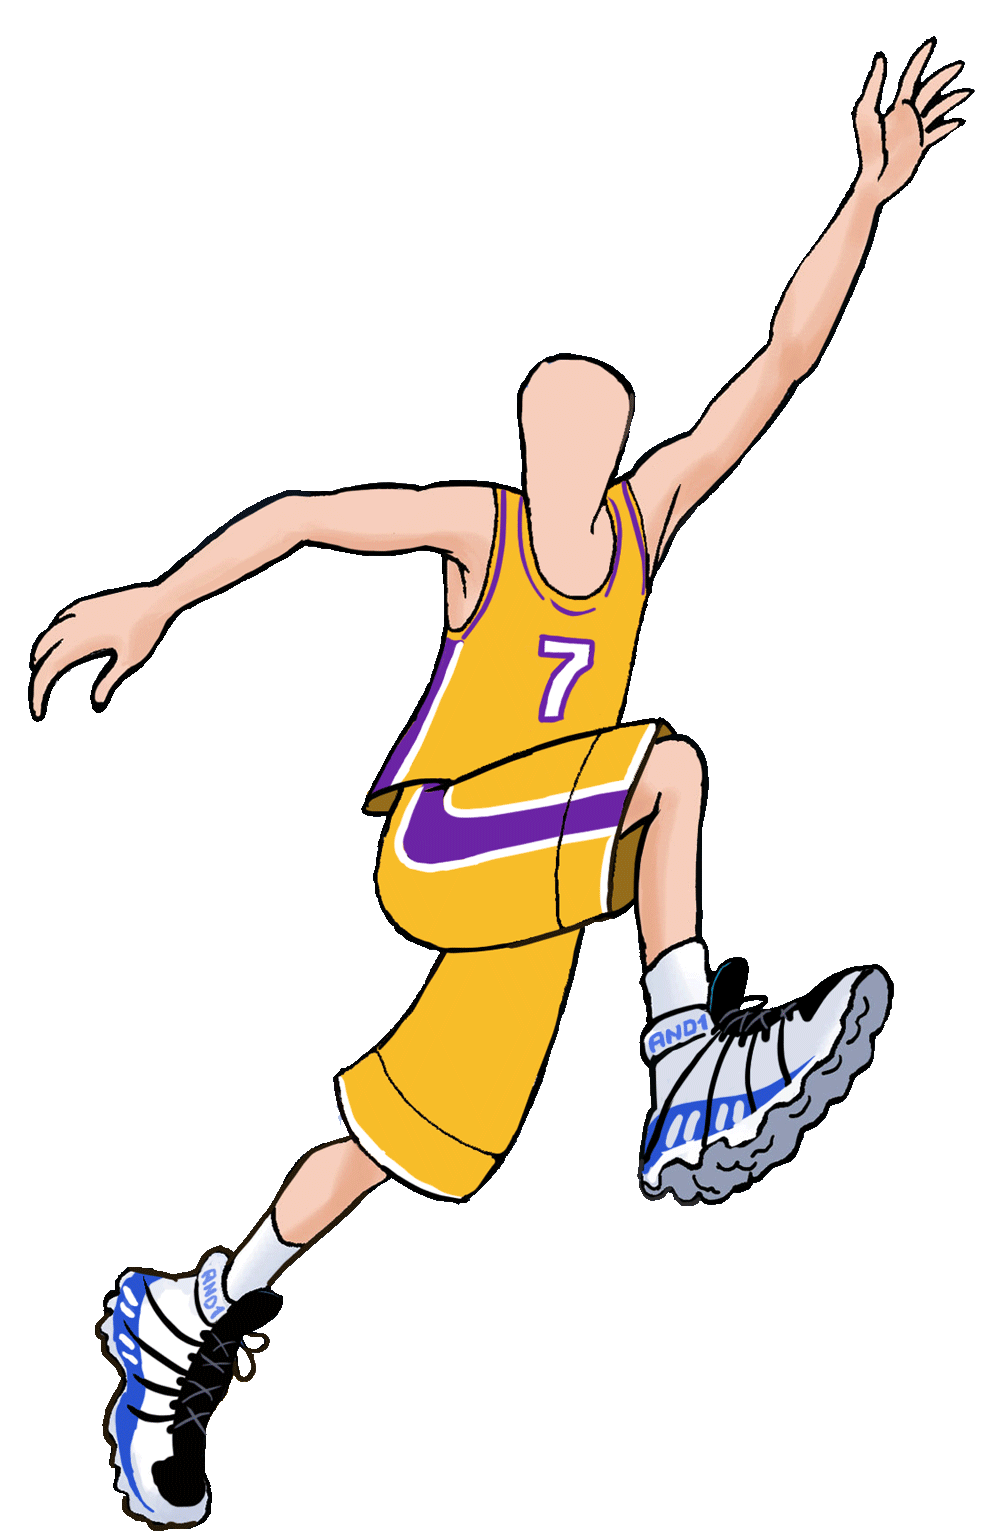 Basketball player block clipart black and white download Order a caricature from photo online by Wish2Be #1 artists black and white download